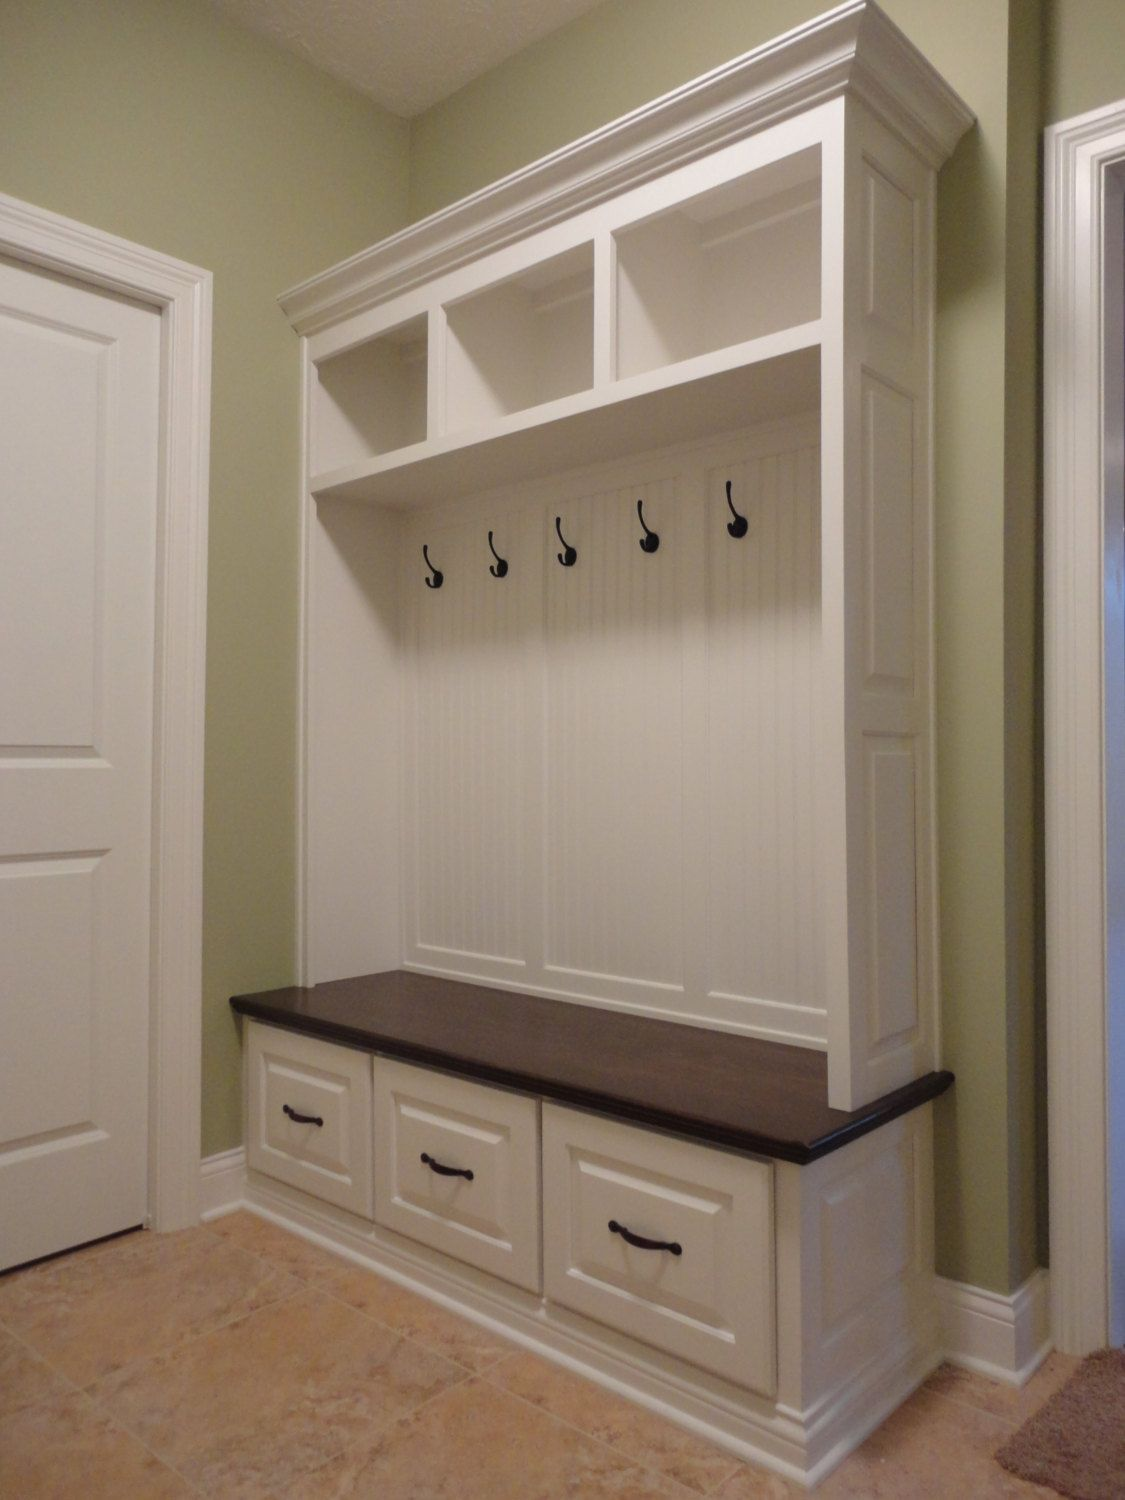 This is the one for the mudroom 9 13 13 no drawers on bottom room for baskets white with stained bench